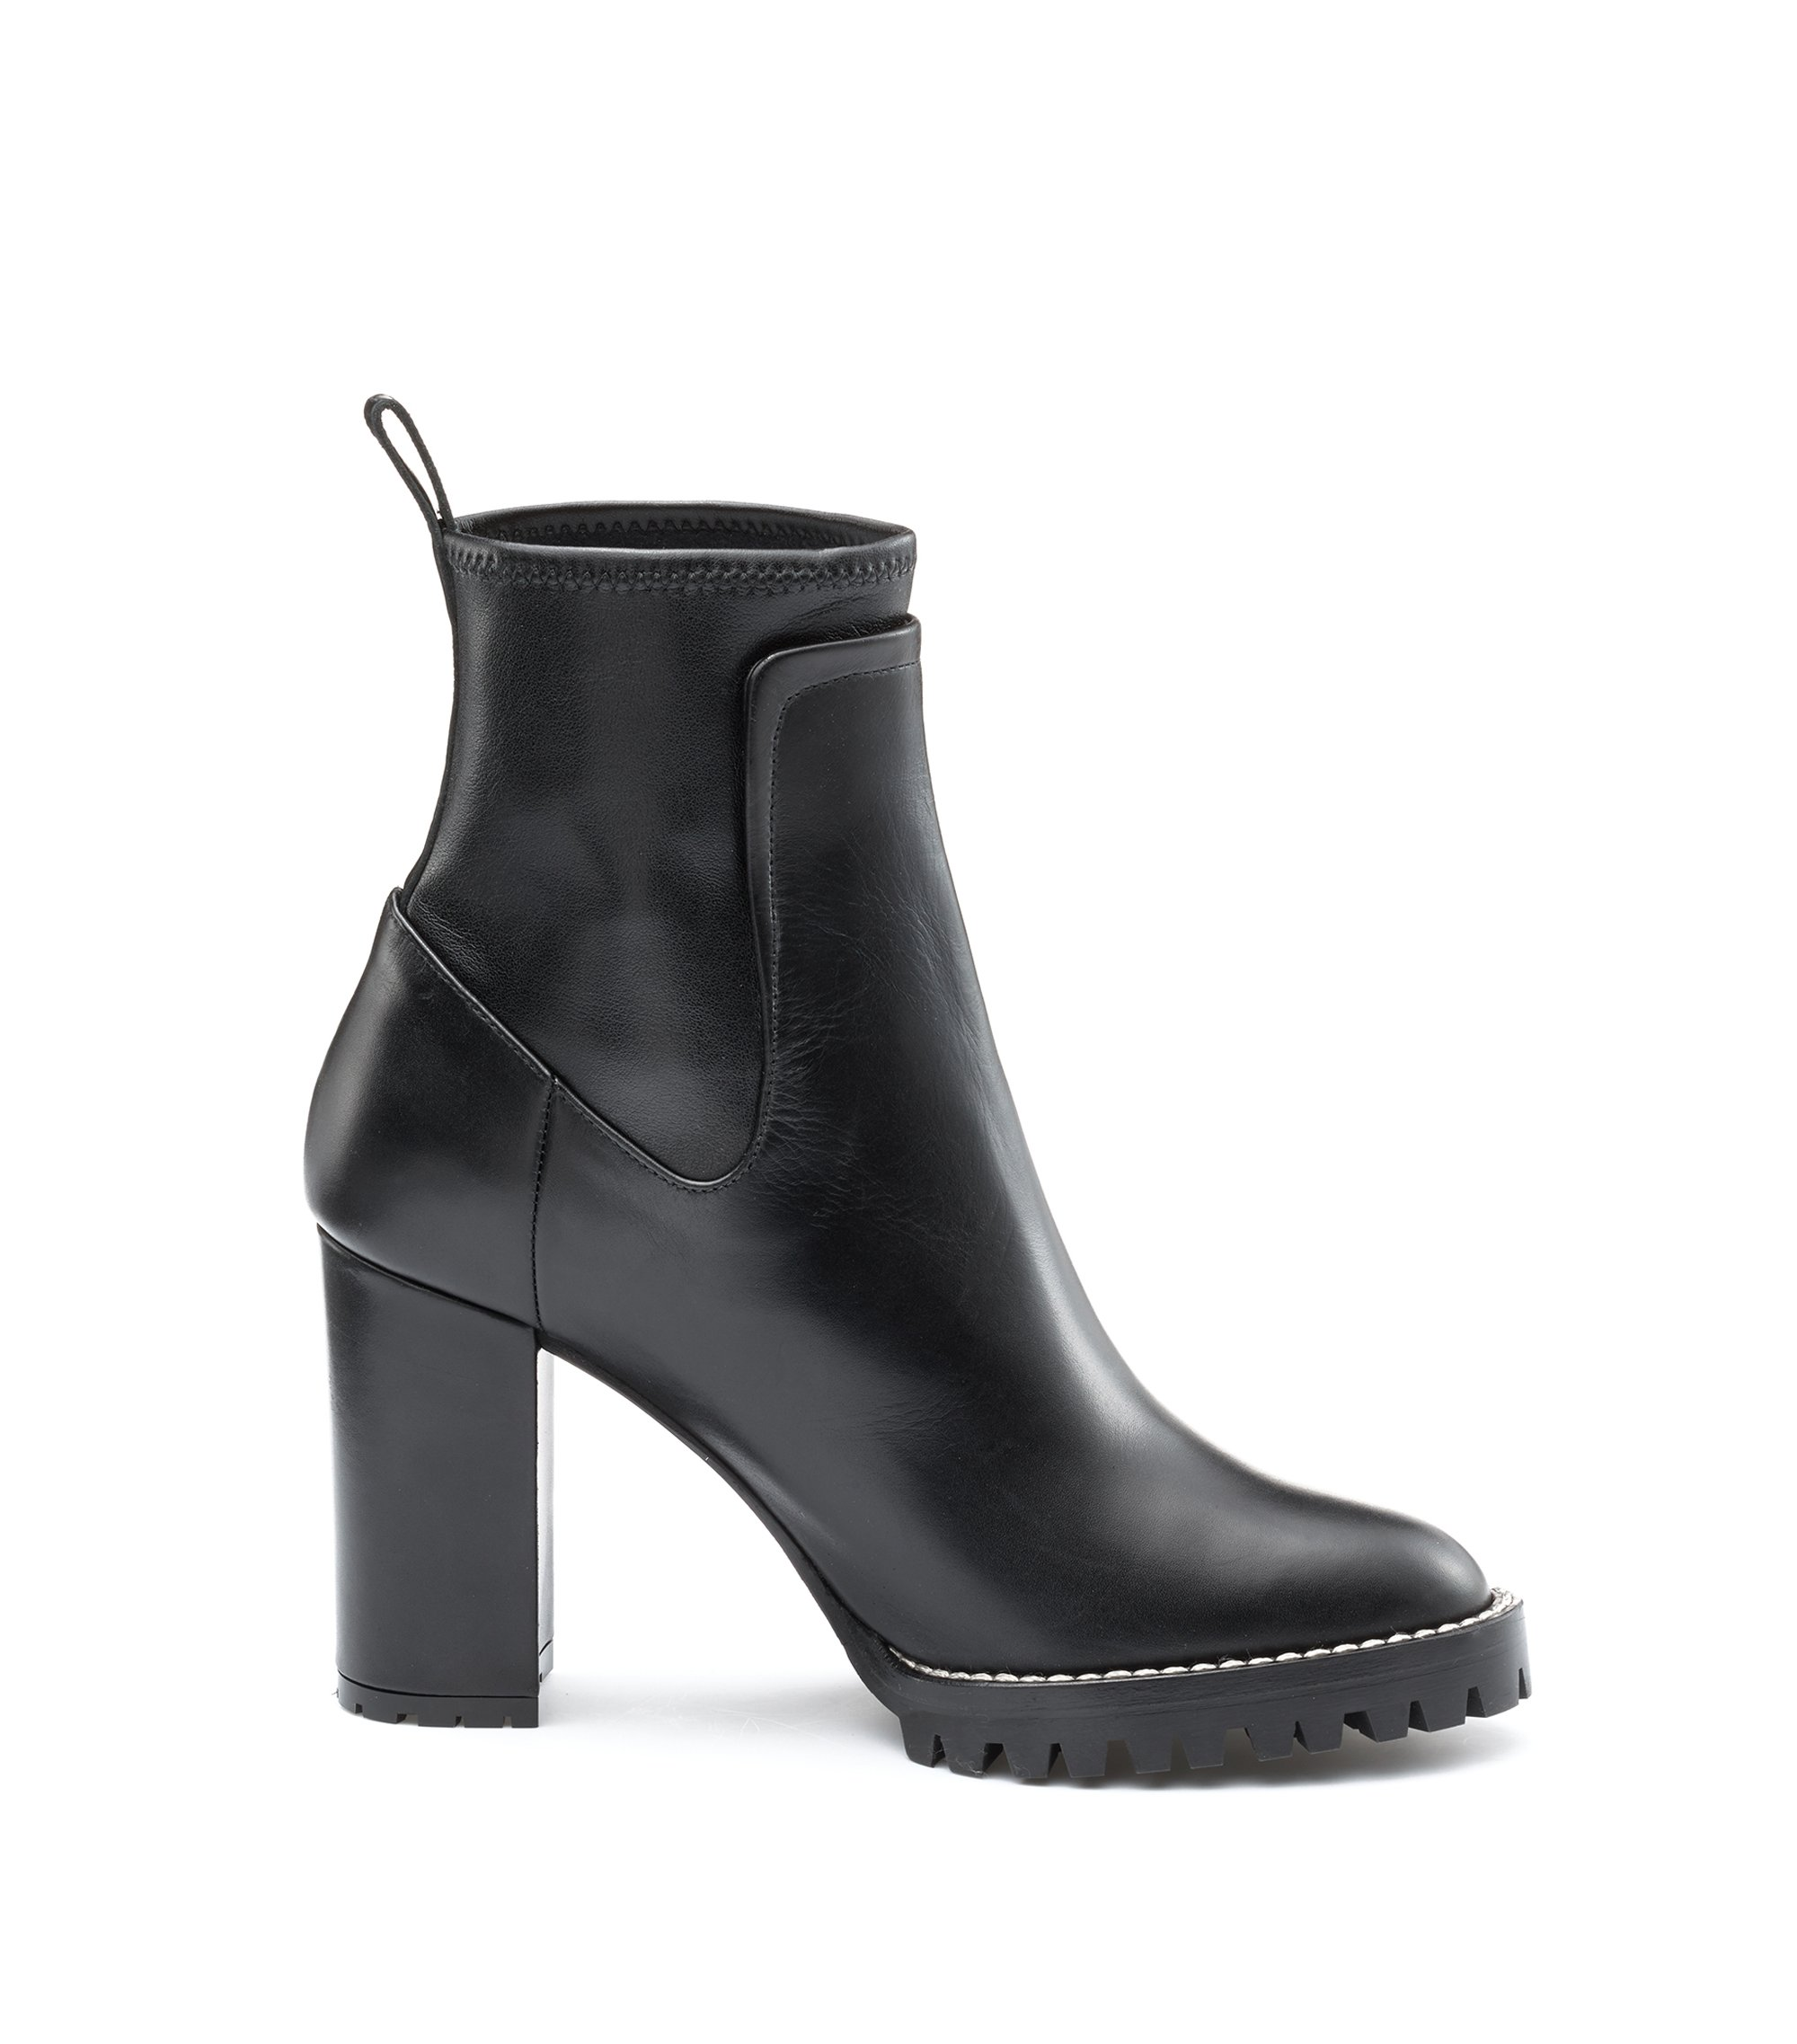 Heeled calf-leather boots with lug sole, Black